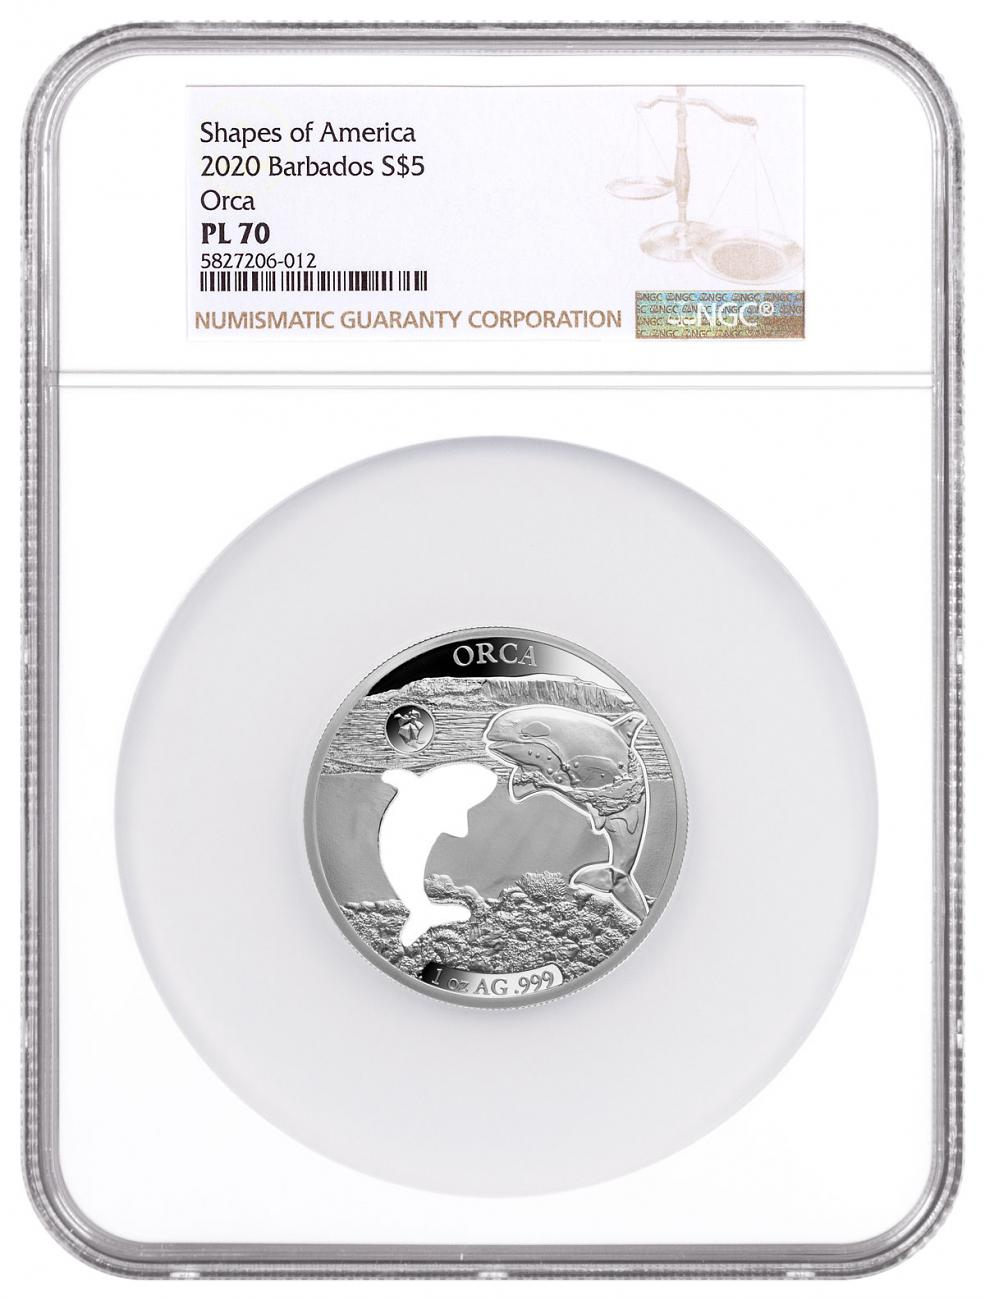 2020 Barbados Shapes of America - Cut-Out High Relief 1 oz Proof-Like Silver $5 Coin Orca NGC PL70